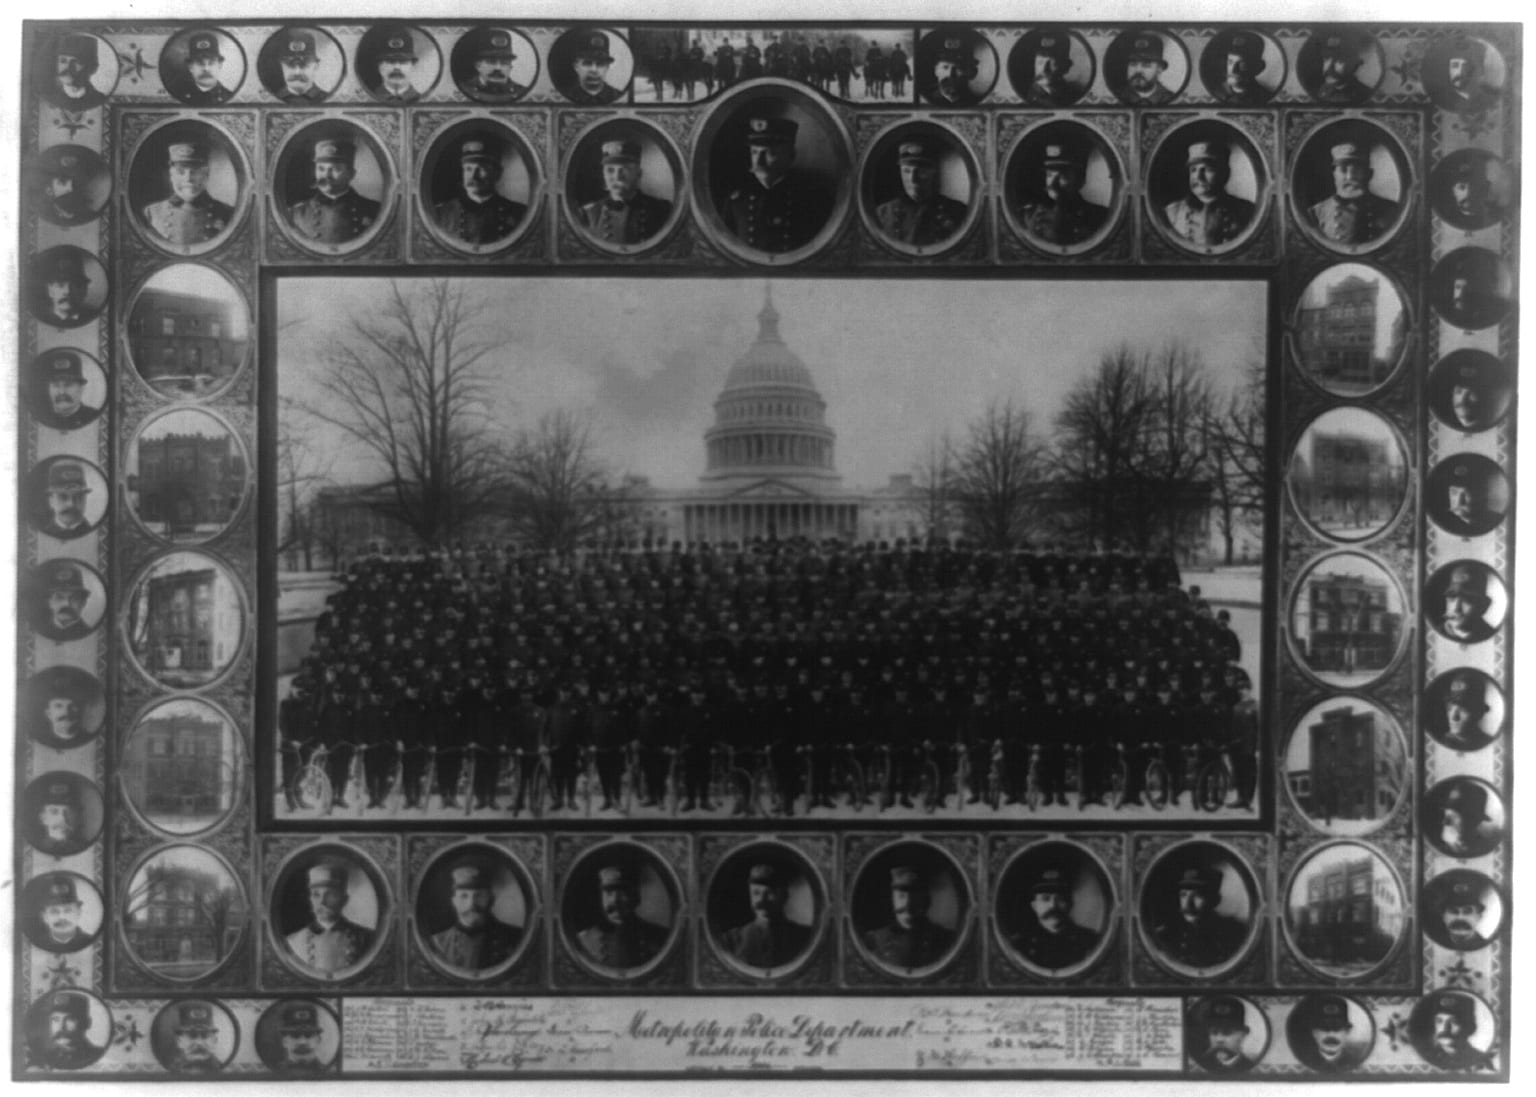 Composite of large group of policemen with U.S. Capitol in background. Head-and-shoulders portraits of policemen and police stations around border.